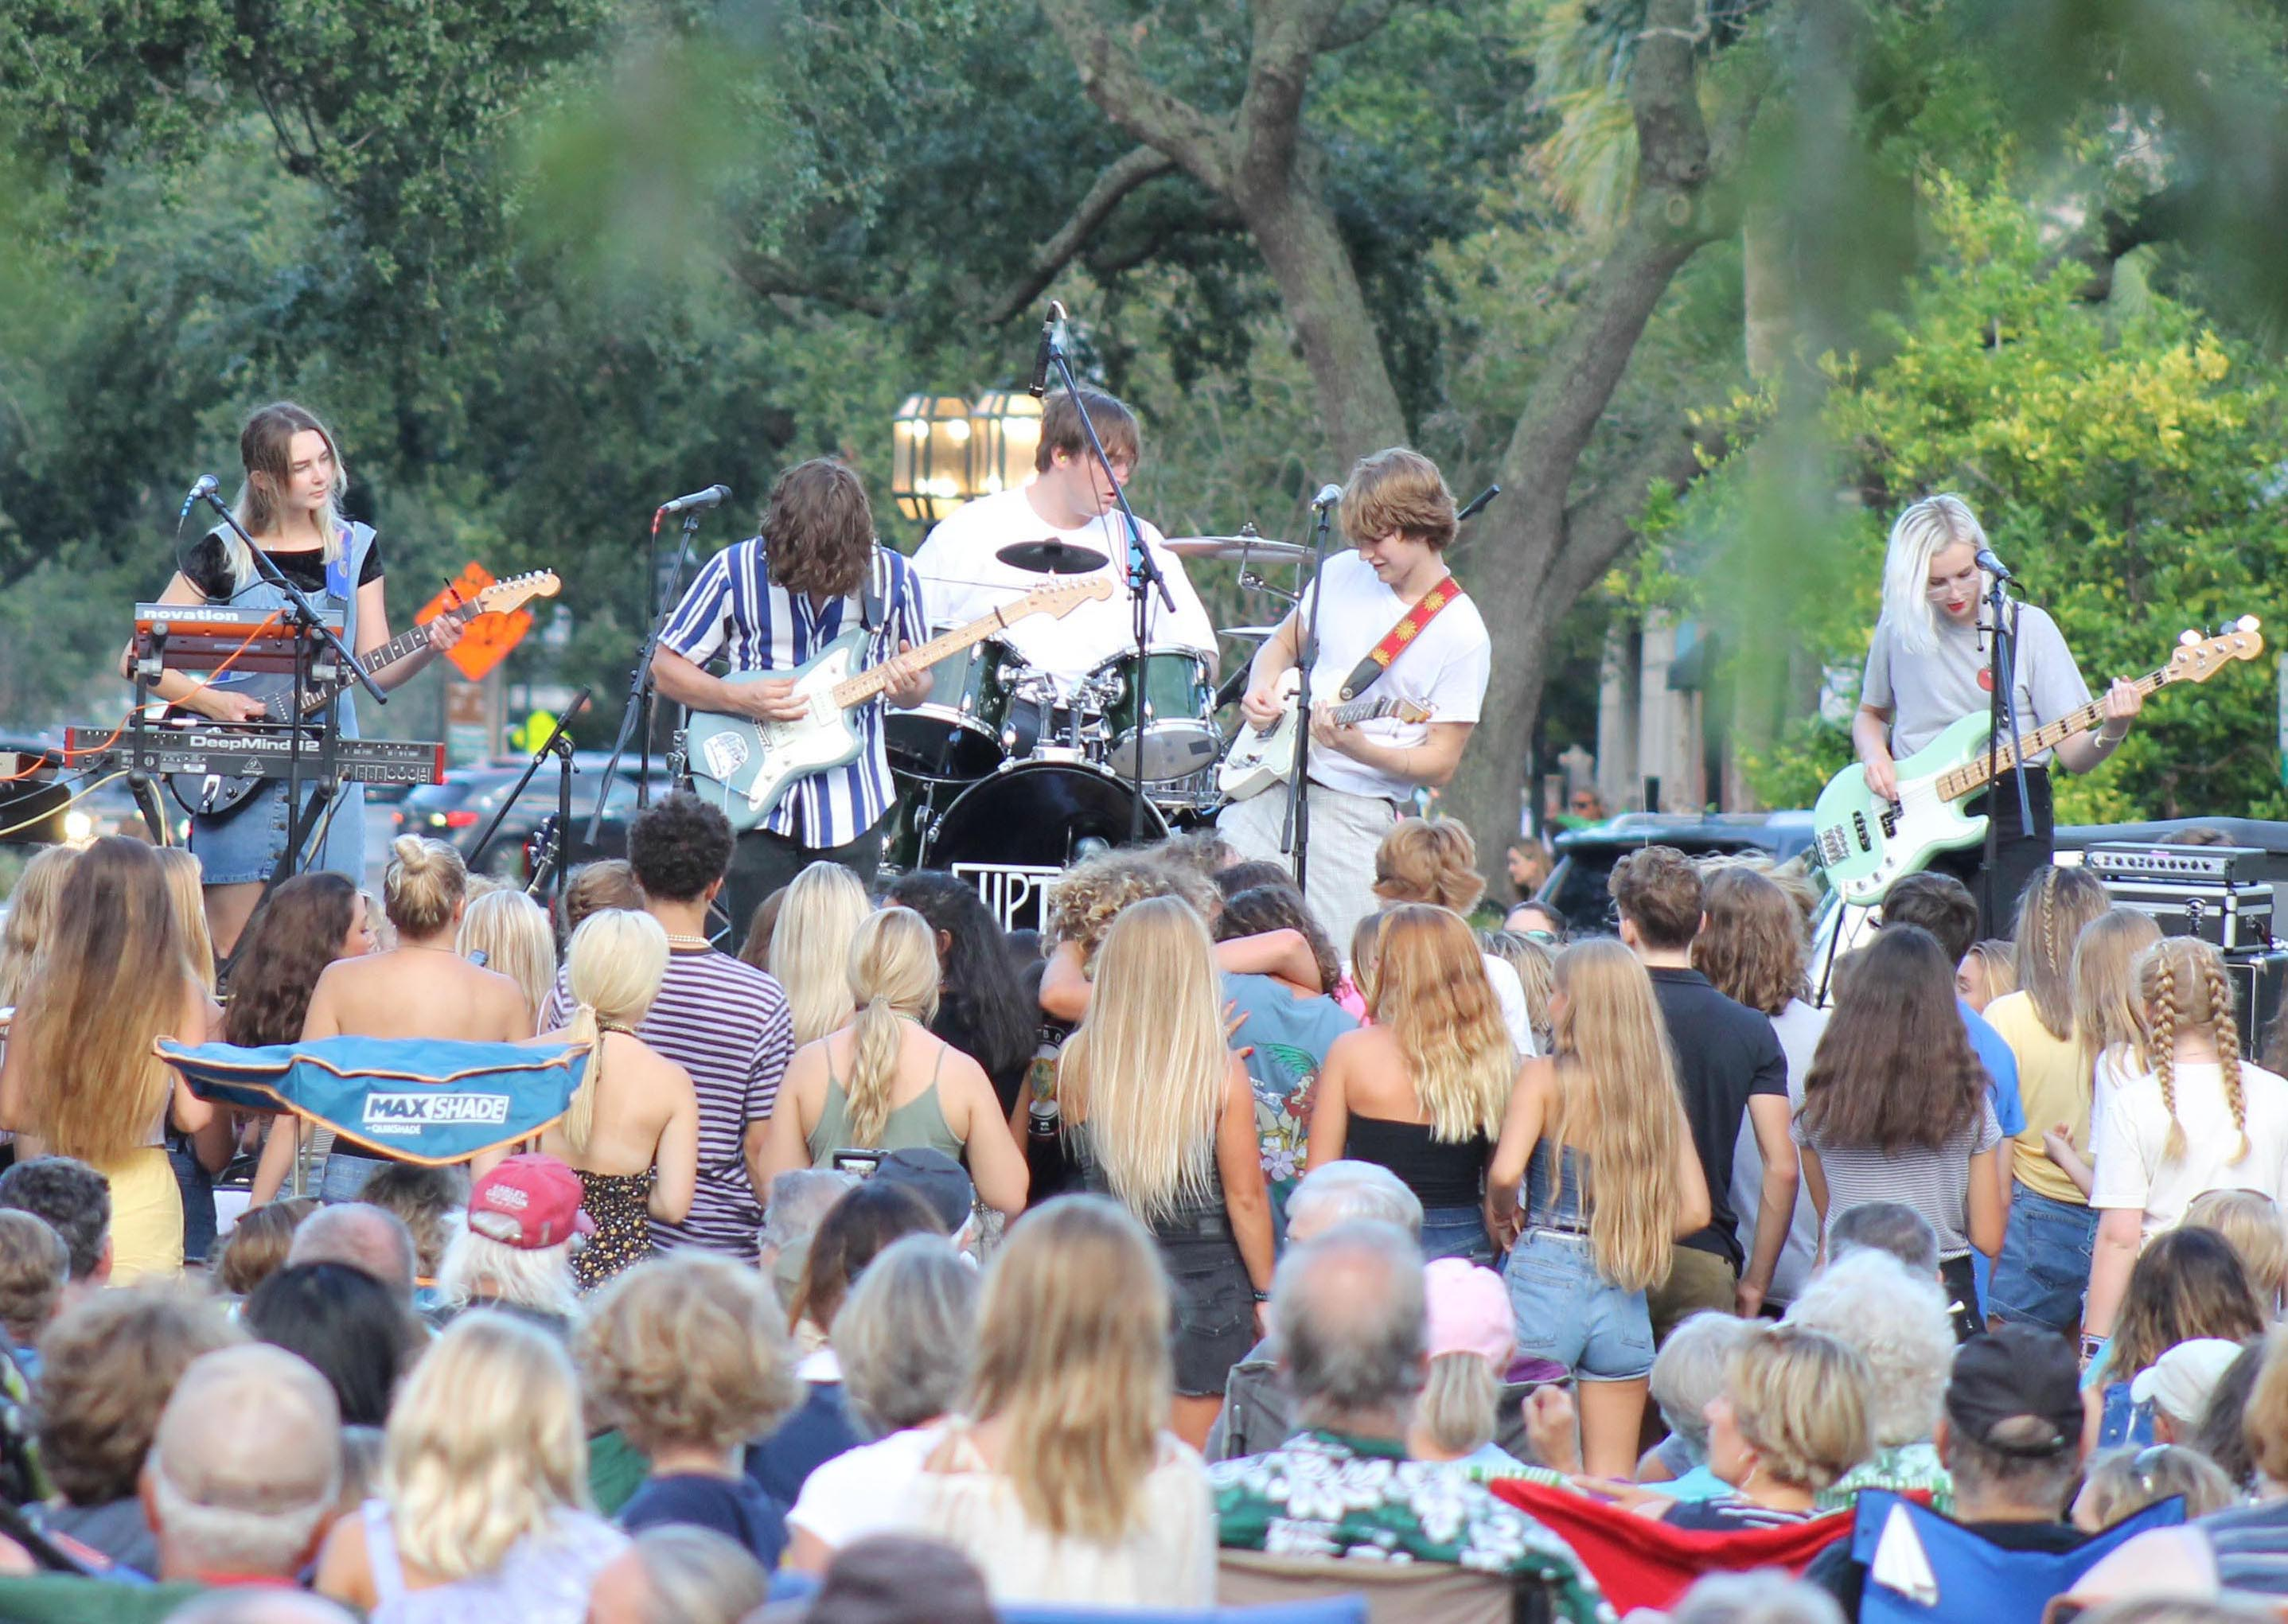 Hundreds of people attended Sounds on Centre monthly concerts from April through October until last year, when guidelines to prevent the spread of the coronavirus caused the shows to be canceled. The Fernandina Beach City Commission voted to approve the permit for the shows in 2021, but organizers say they have not come to a final decision regarding the concerts.